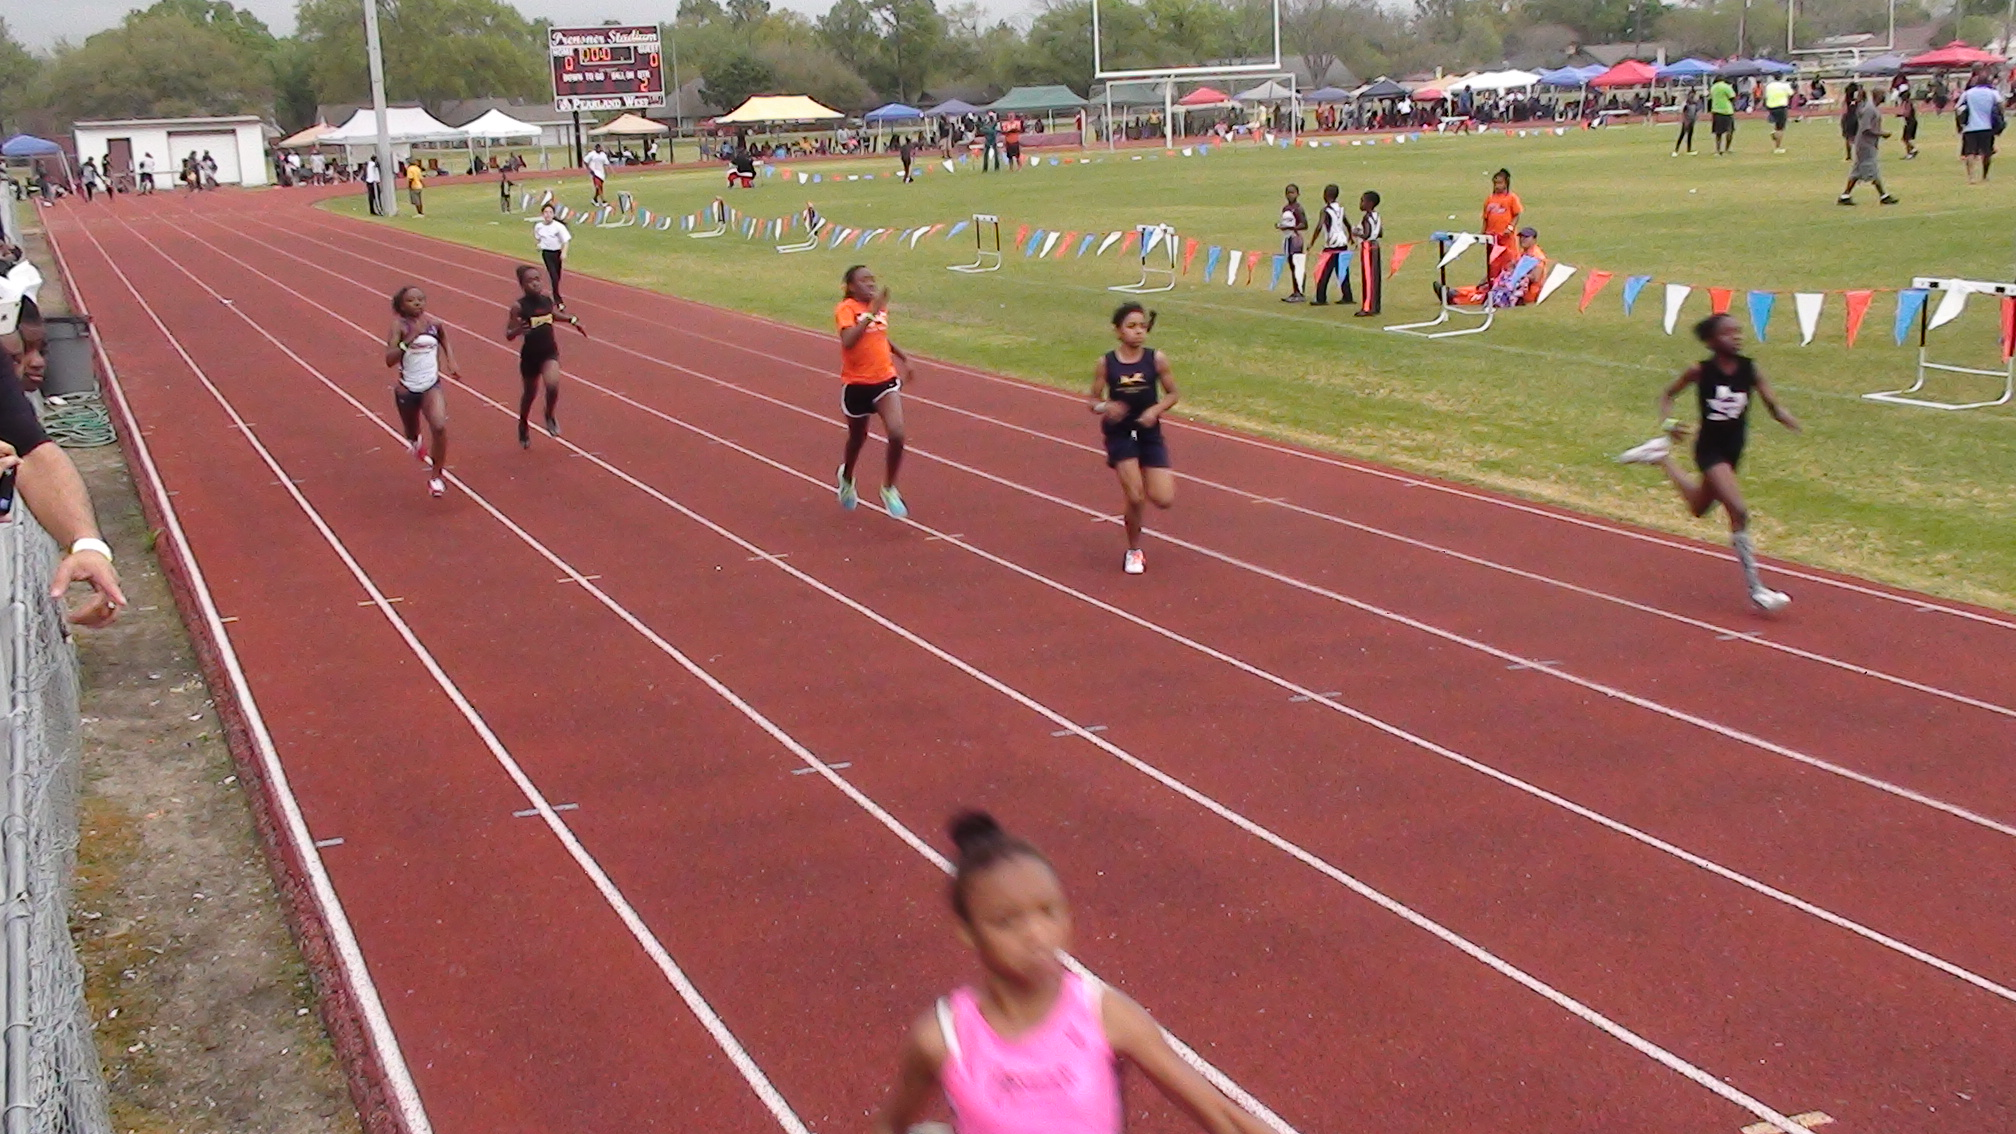 Carson running in the 200m